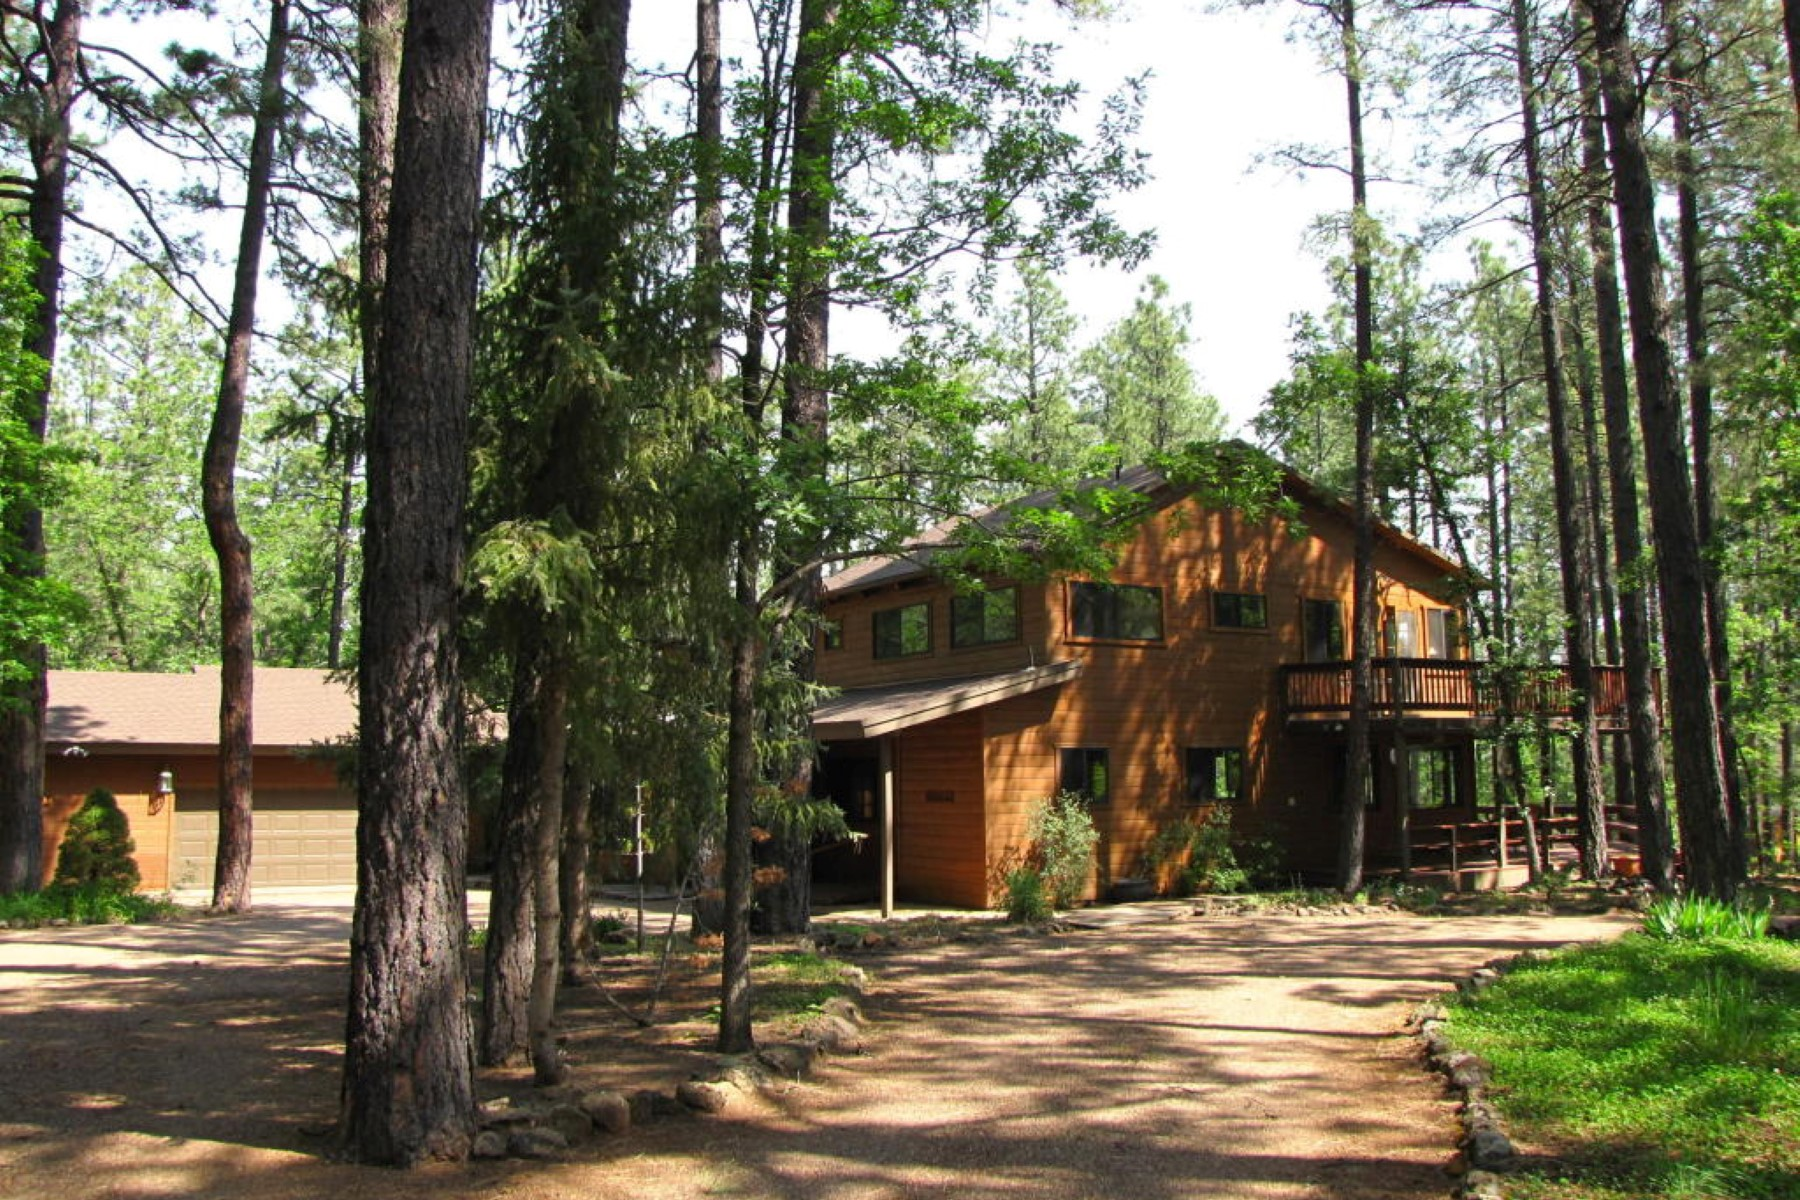 Moradia para Venda às Spacious and beautifully maintained home 2864 Aspen Loop Pinetop, Arizona, 85935 Estados Unidos